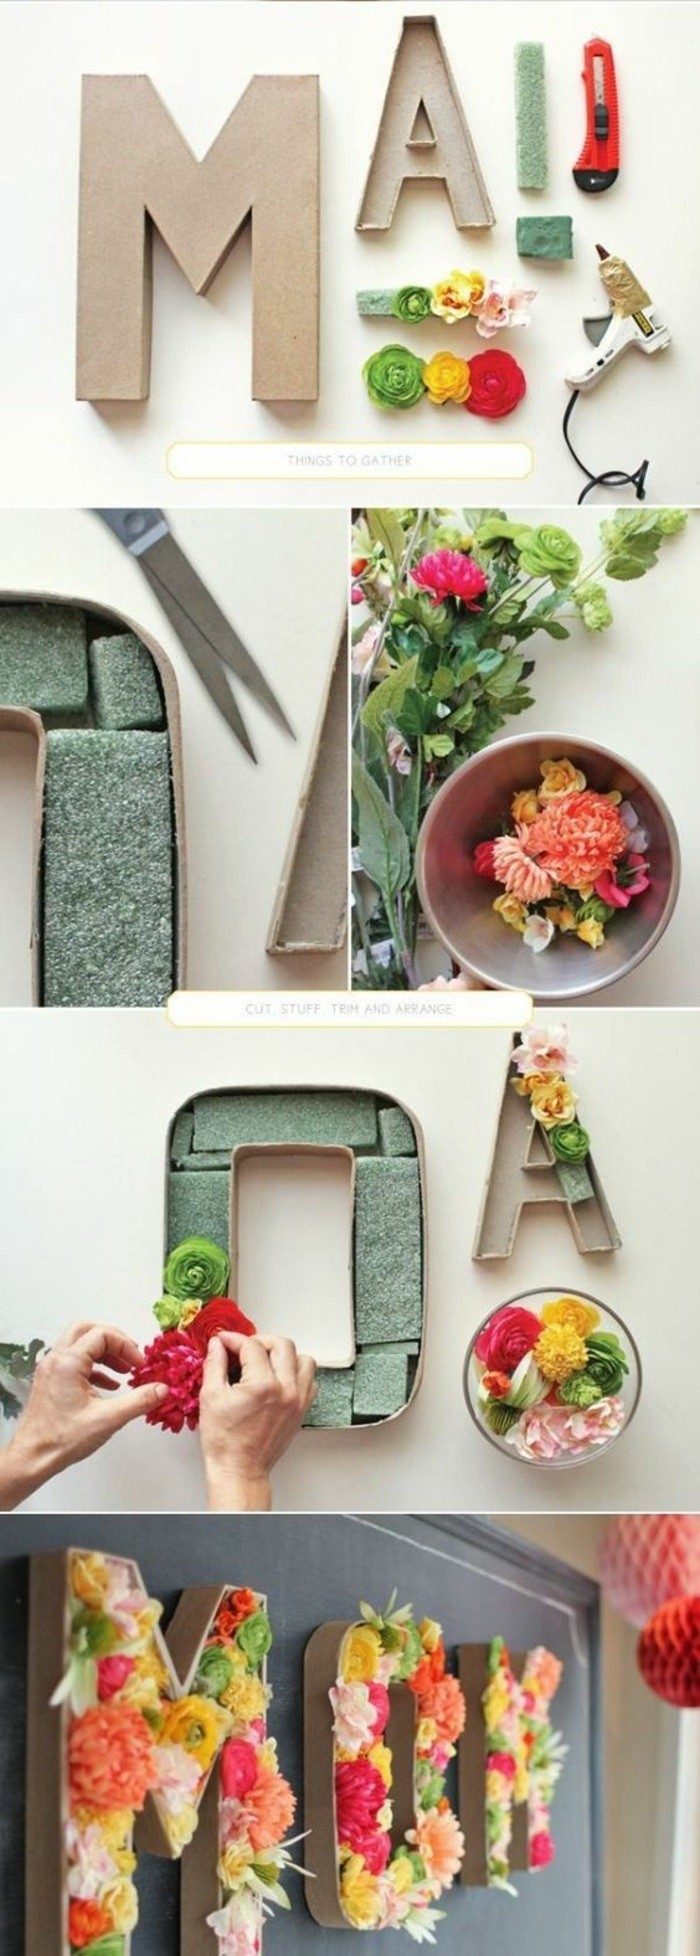 ideas de manualidades decoracion con tutoriales paso a paso, mini macetas con flores